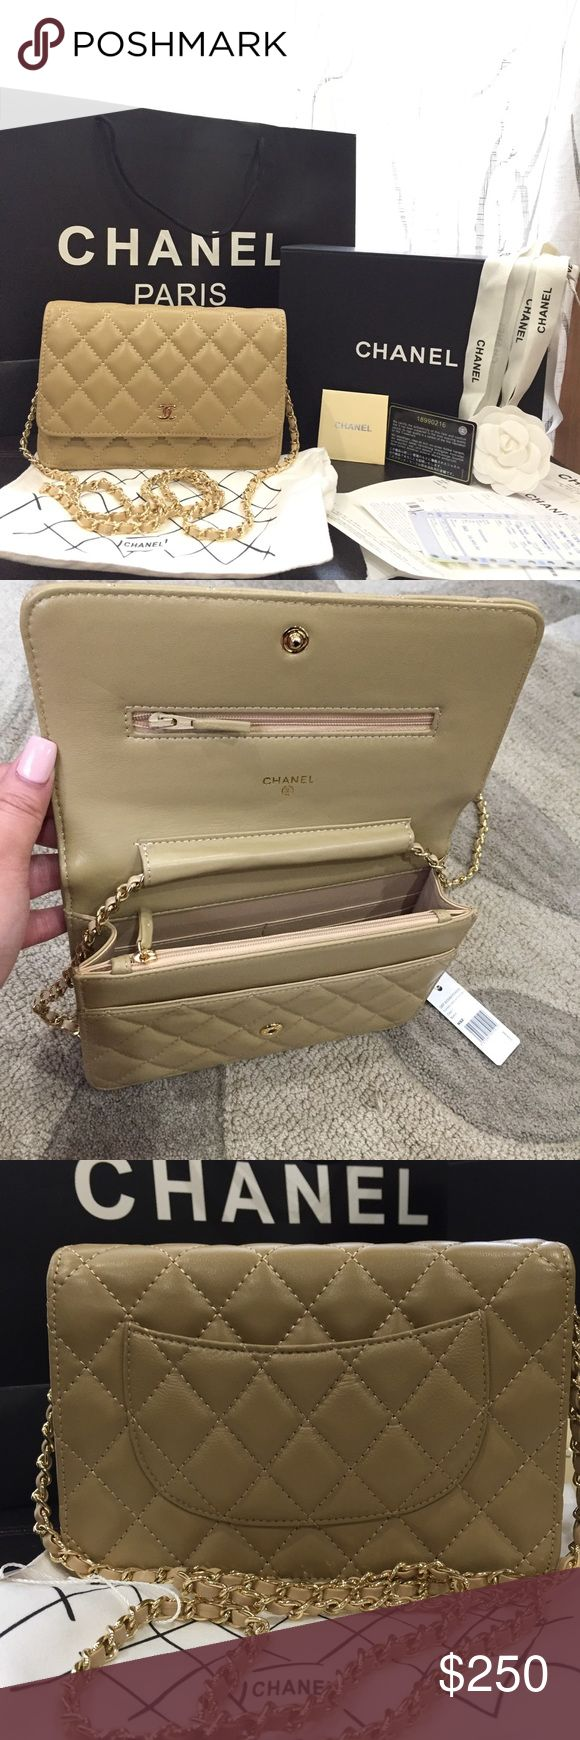 Wallet on chain lambskin leather Beige color comes with everything in the picture Bags Crossbody Bags